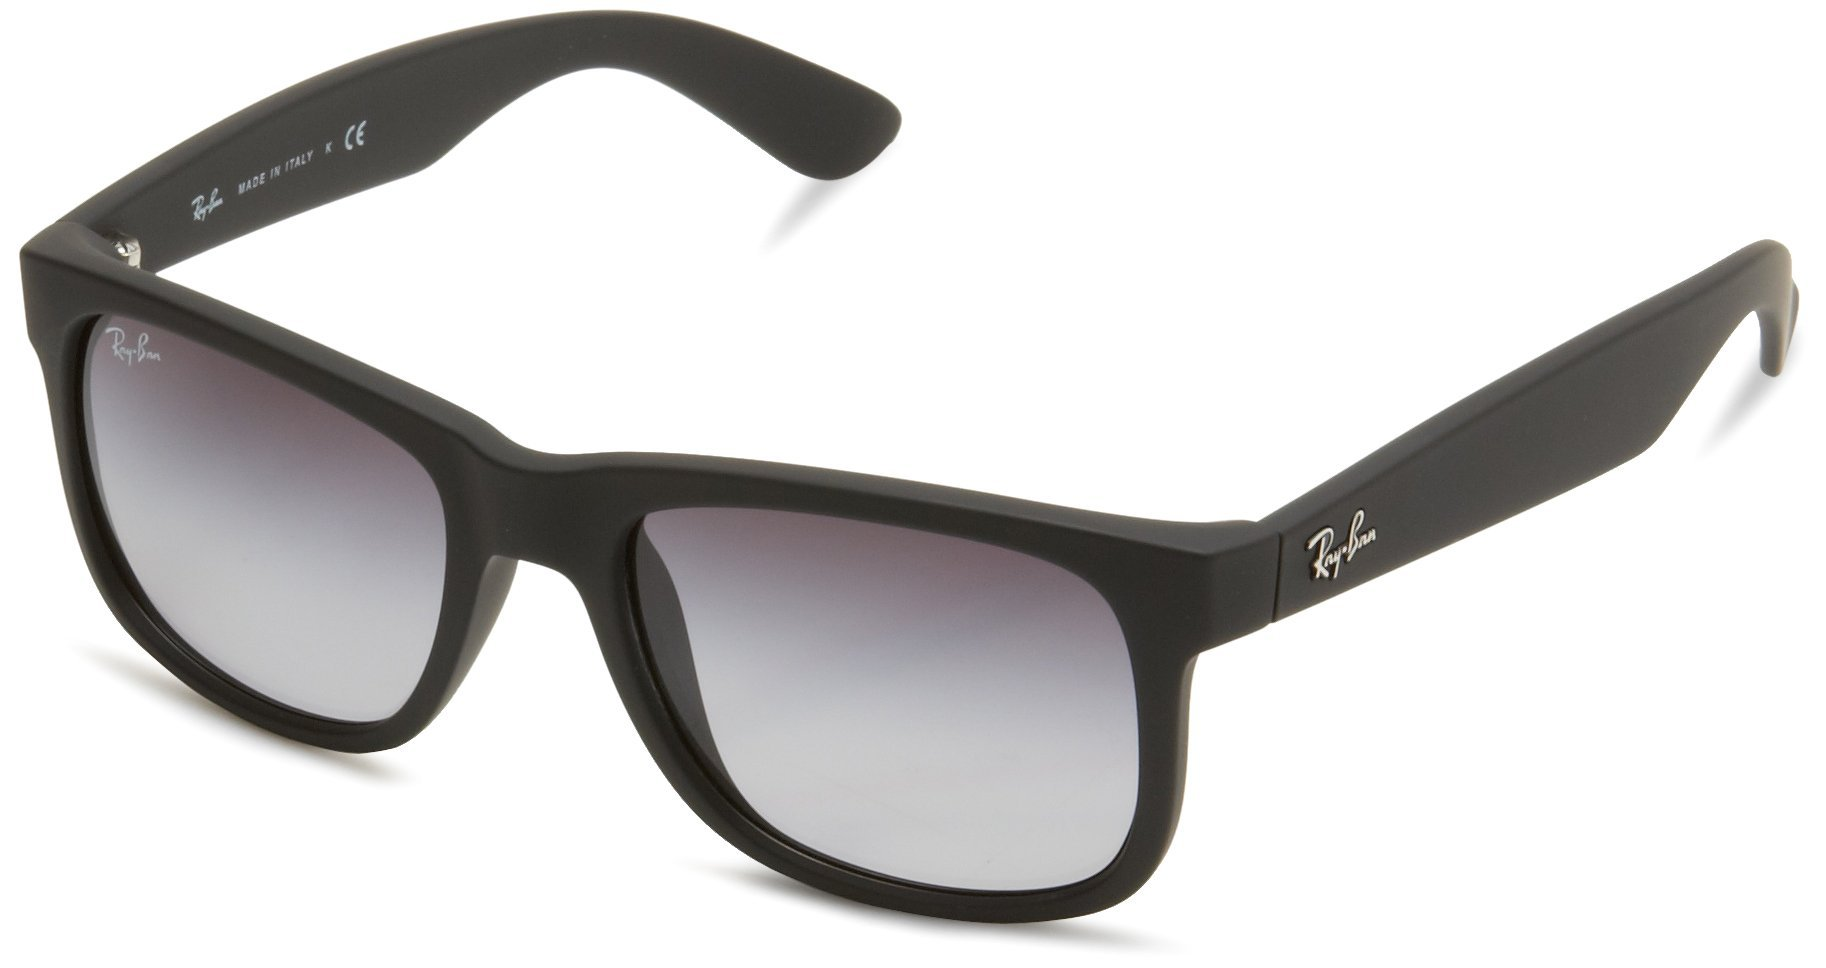 RAY-BAN RB4165 Justin Rectangular Sunglasses, Black Rubber/Grey Gradient, 51 mm by RAY-BAN